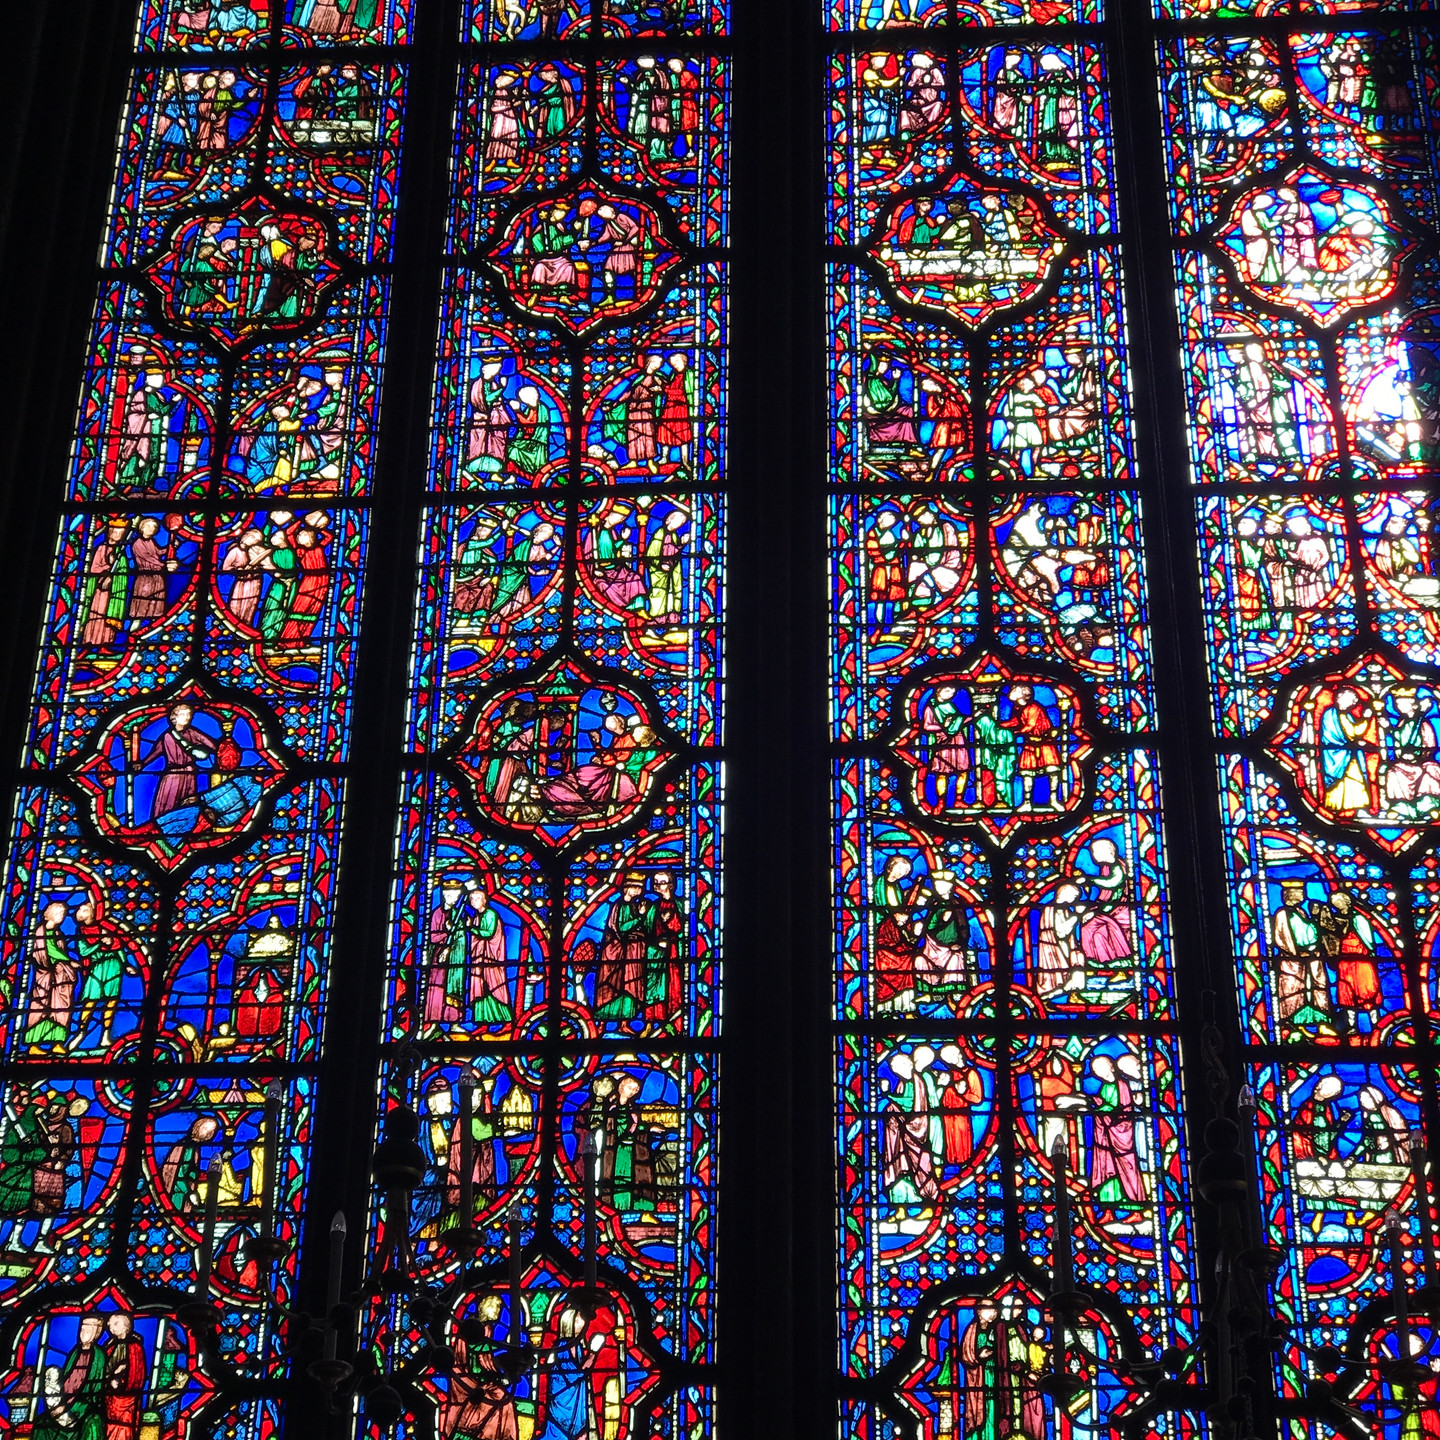 Stained Glass Windows at Sainte Chapelle in Paris